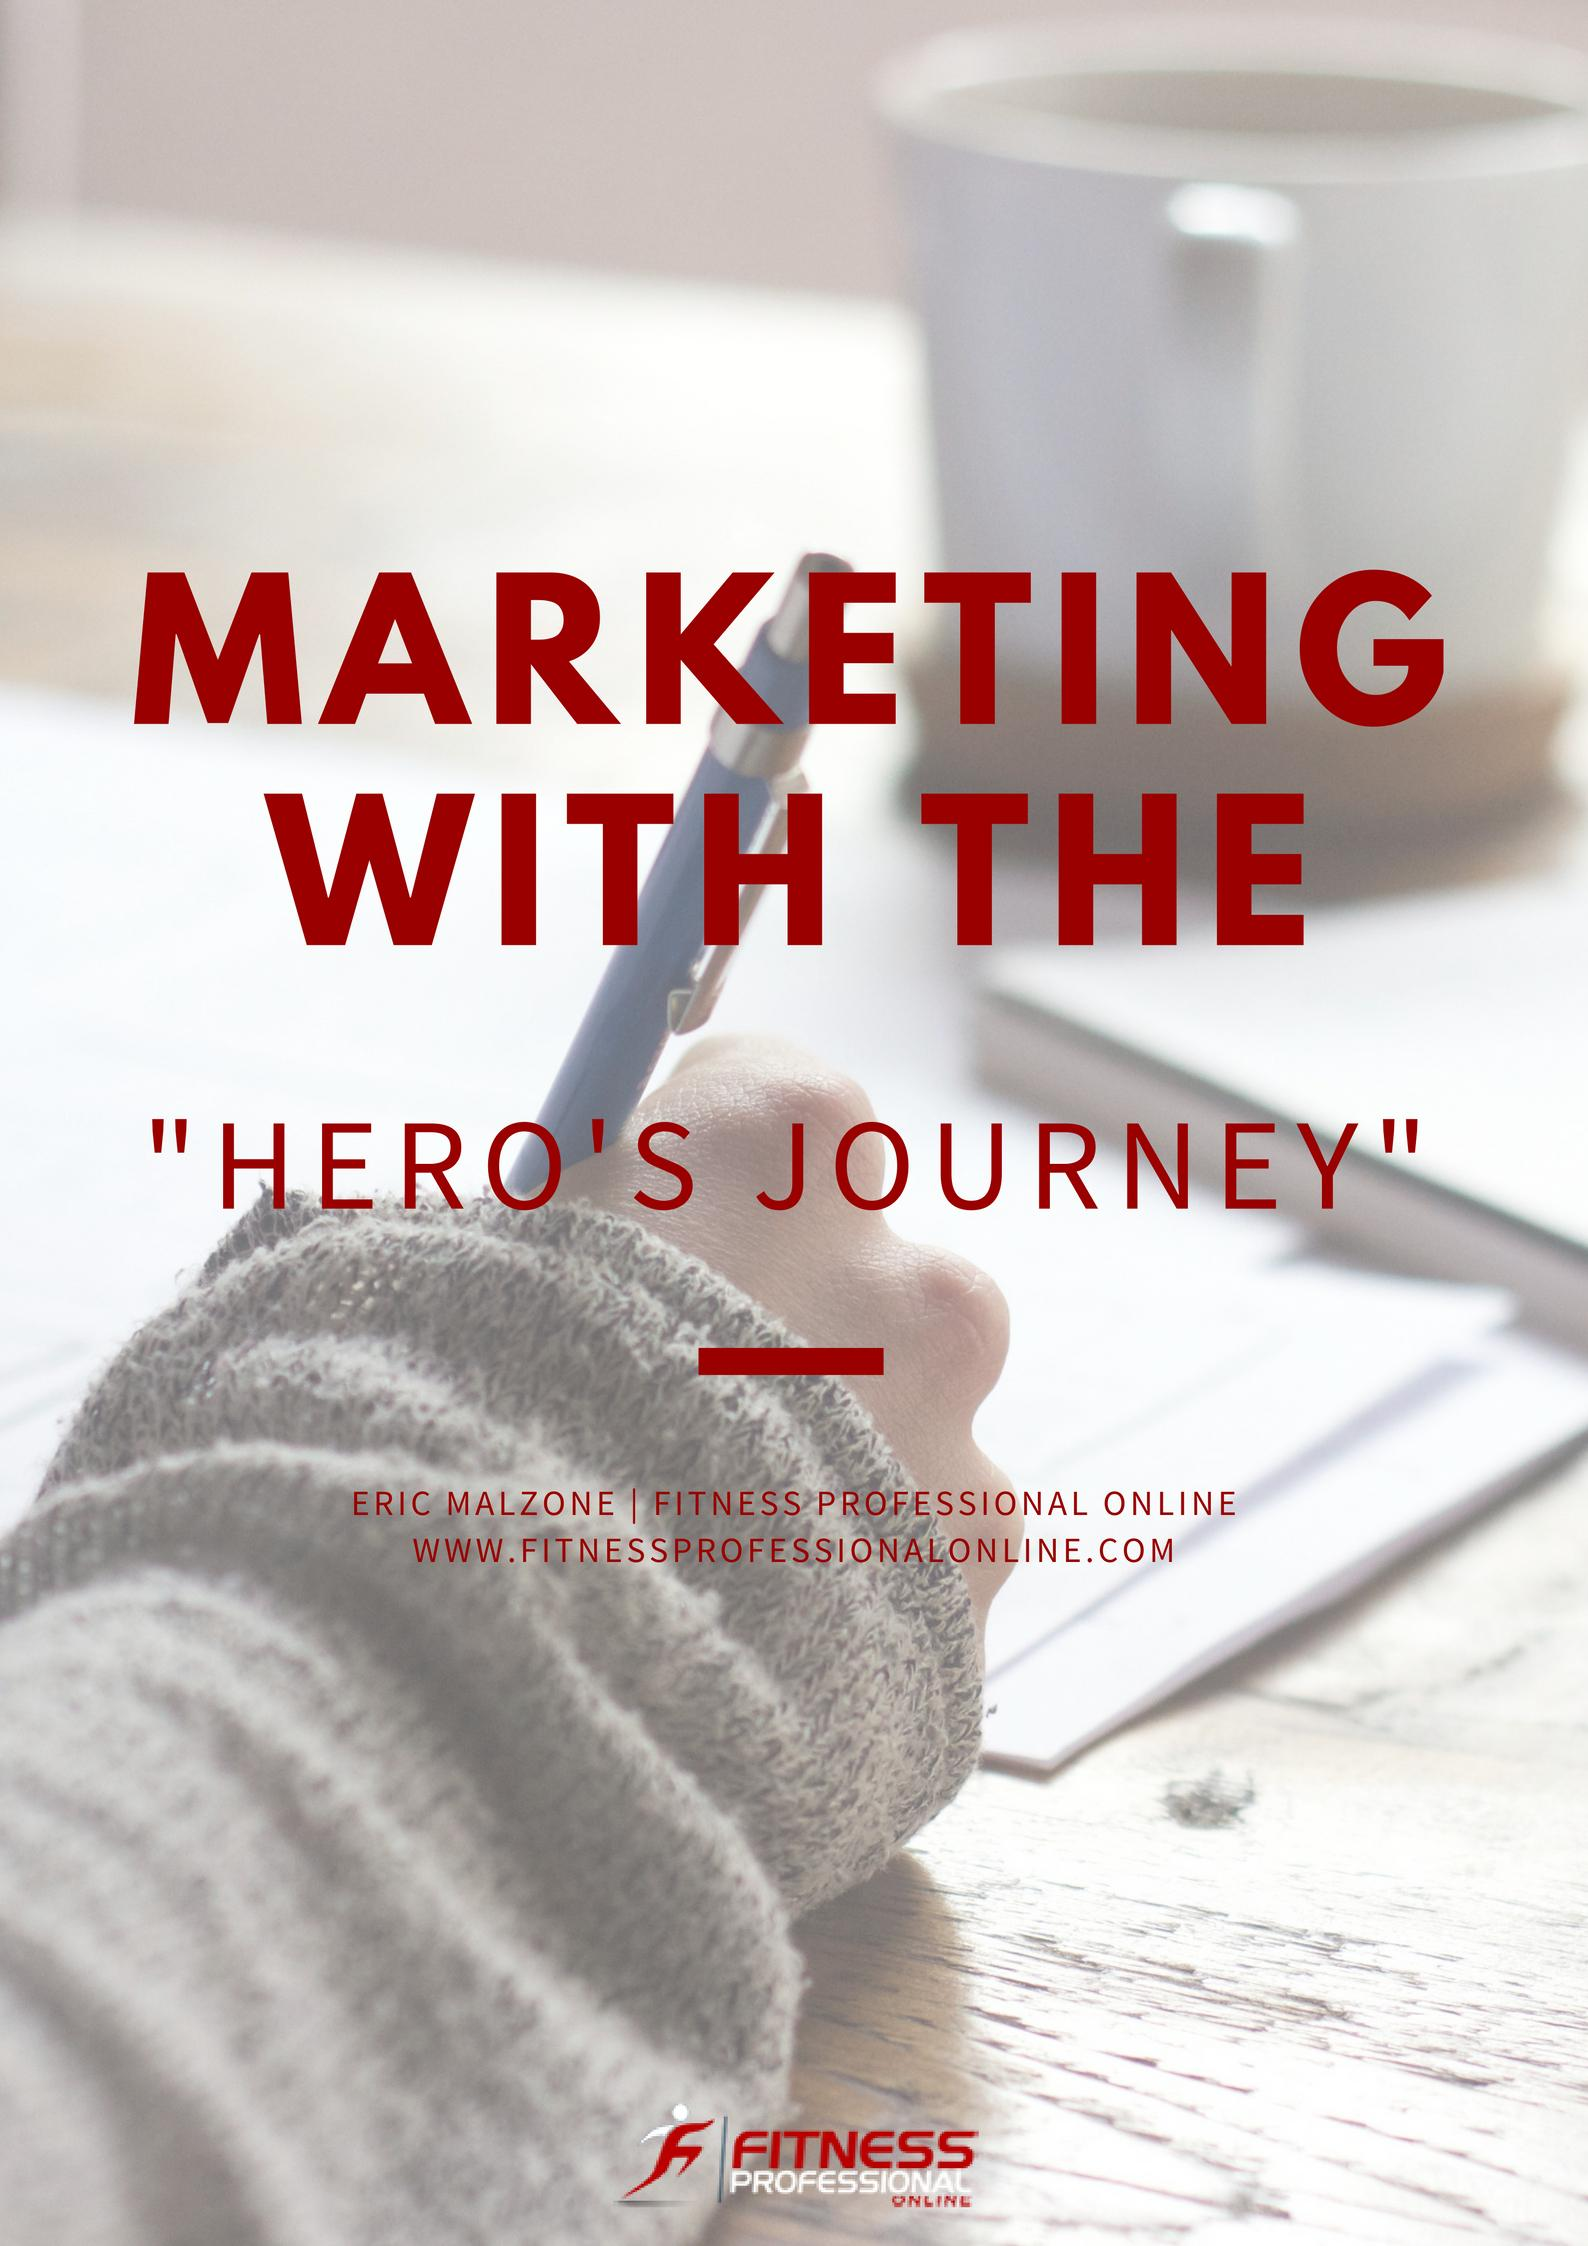 Looking to tell your personal Hero's Journey?